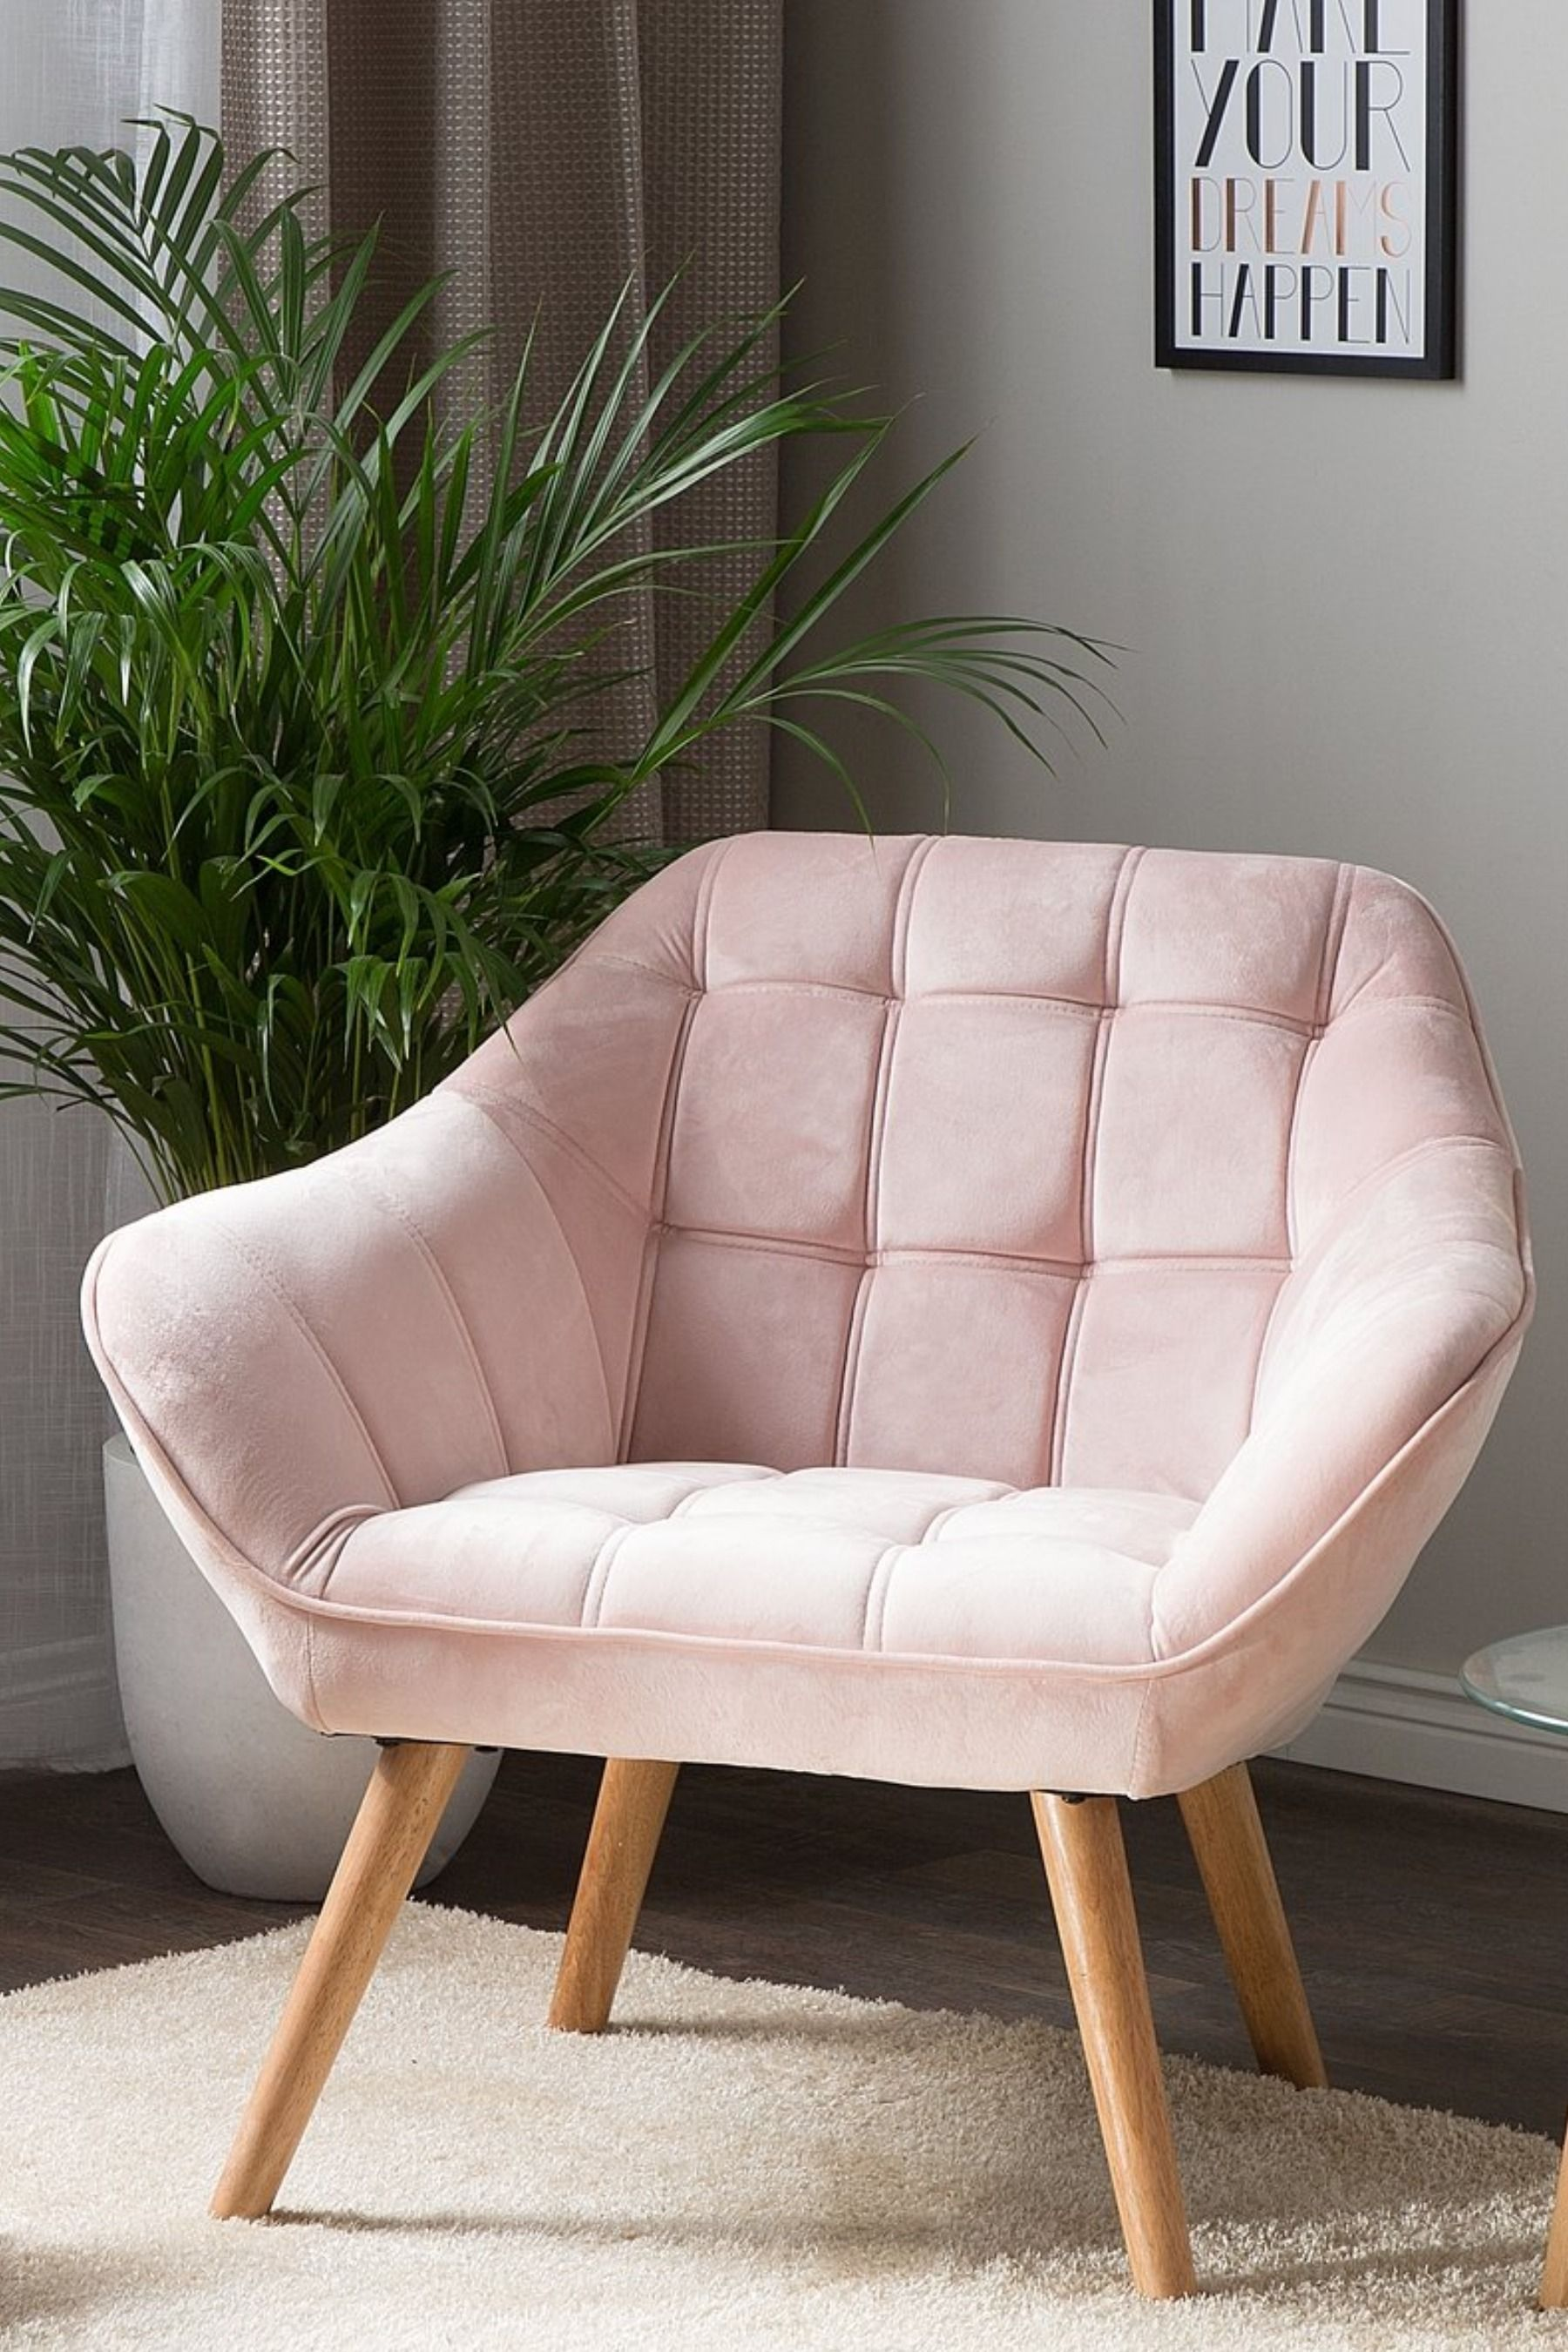 Chairs Arm Chairs Living Room Armchair Bedroom Living Room Chairs Comfortable living room chairs